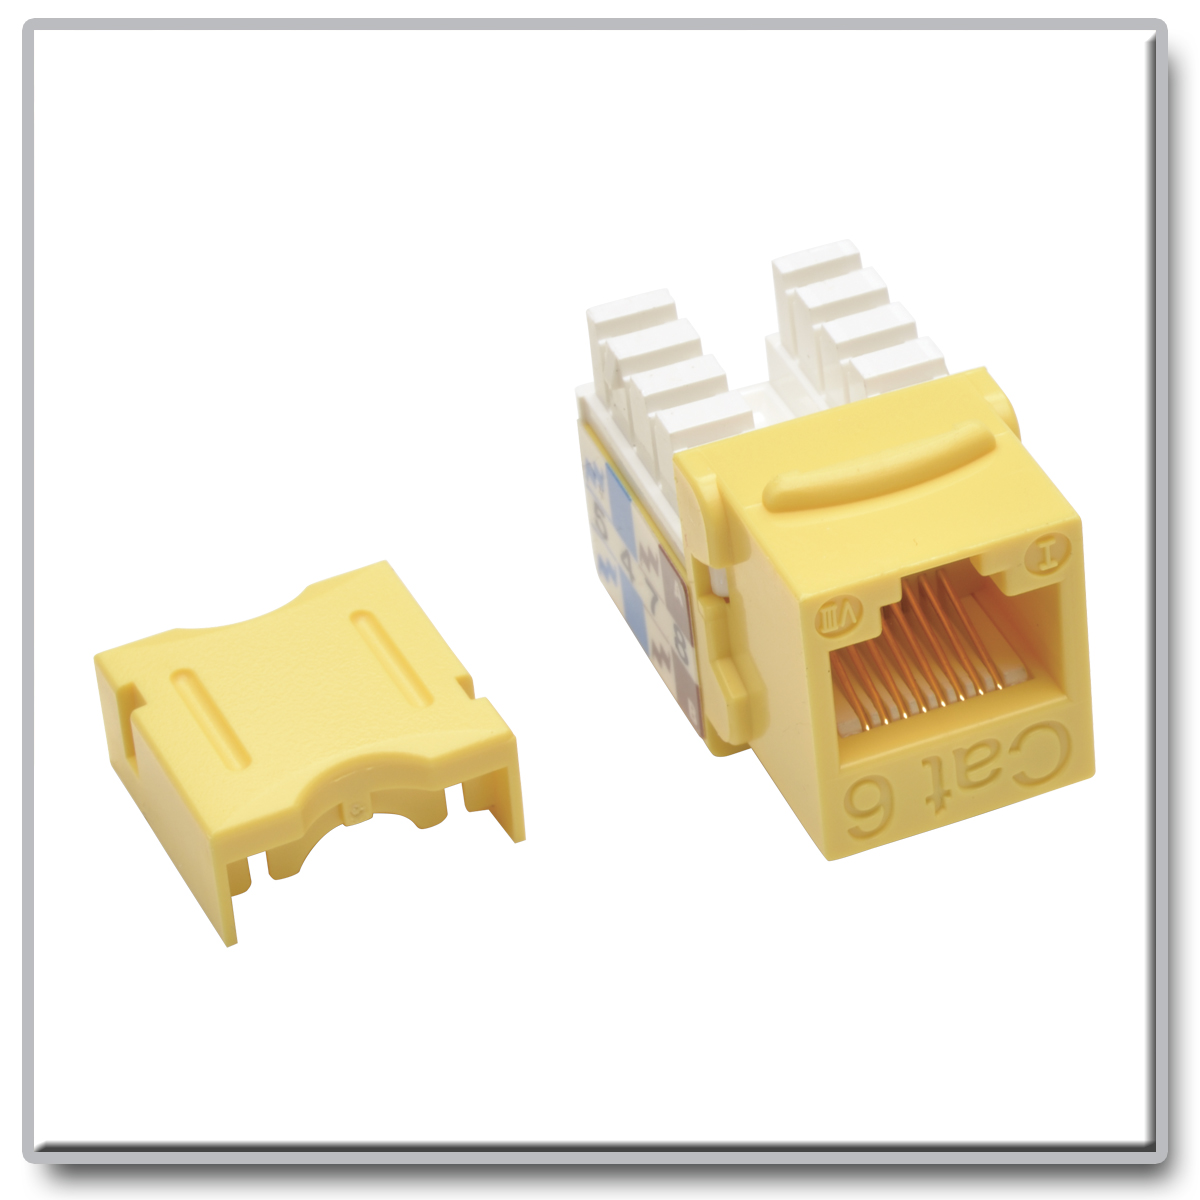 N238 001 Yw Cat6 110 Punch Down Keystone Jack By Office Depot Wiring Slide 1 Of 1show Larger Image Cat5e Style